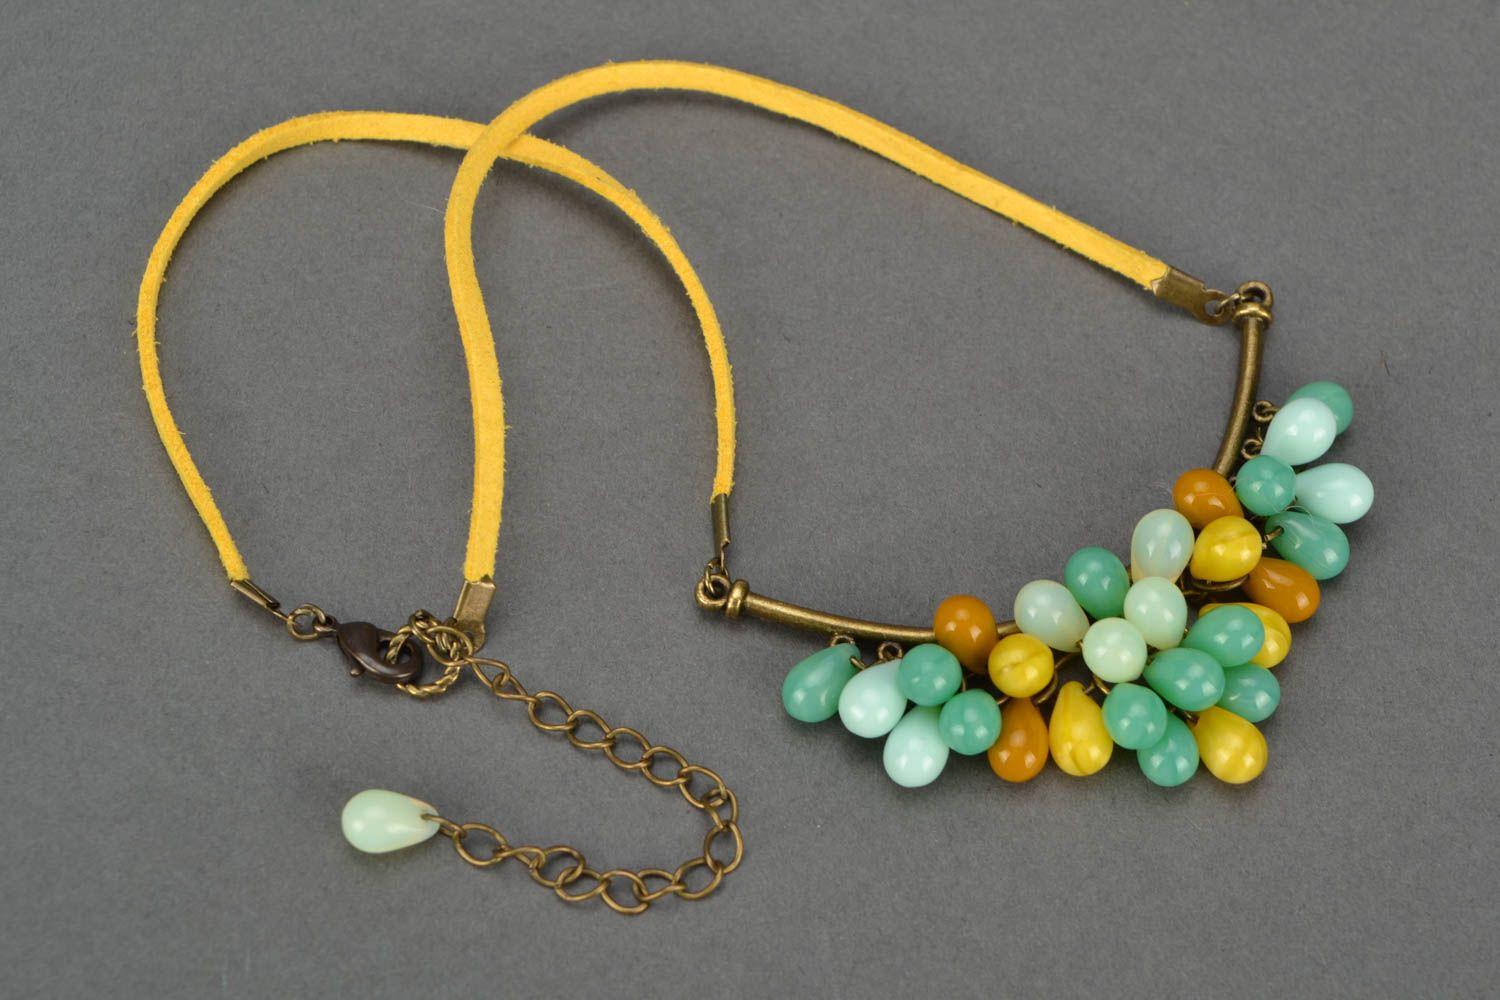 Beautiful women's handmade designer suede cord necklace with Czech glass beads photo 3